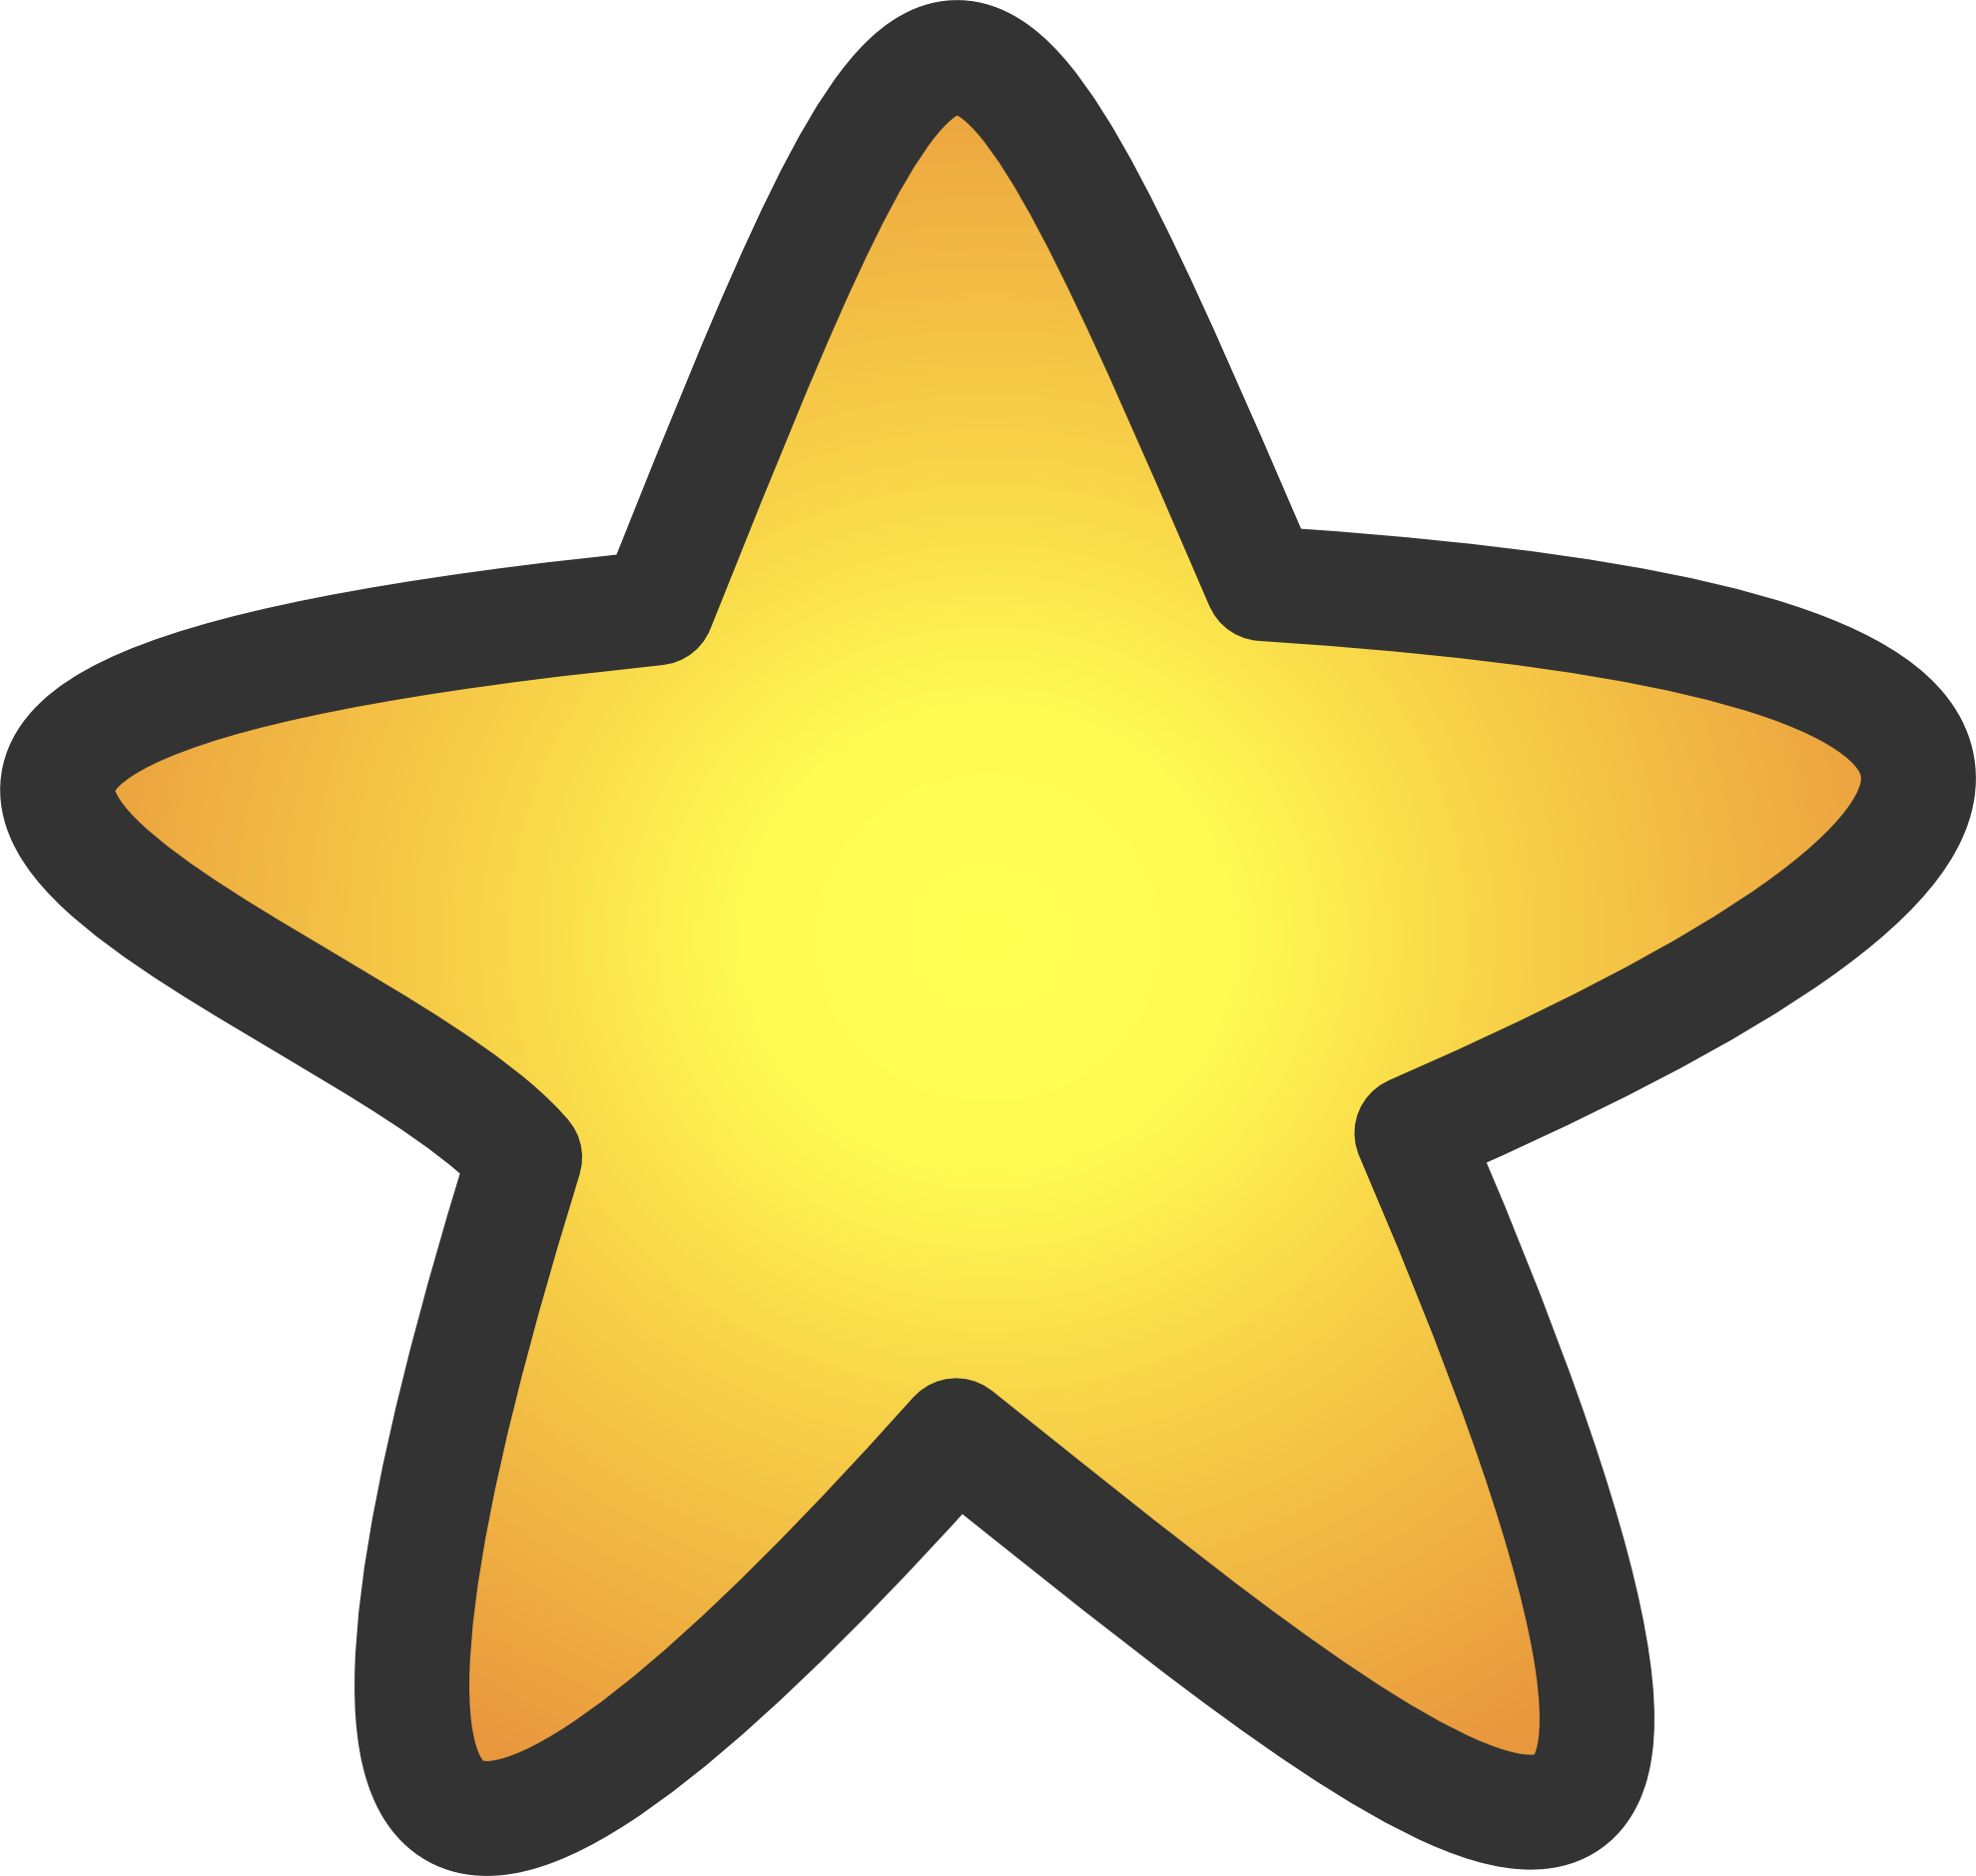 Free gold star clipart clip art black and white Star Clipart | jokingart.com clip art black and white